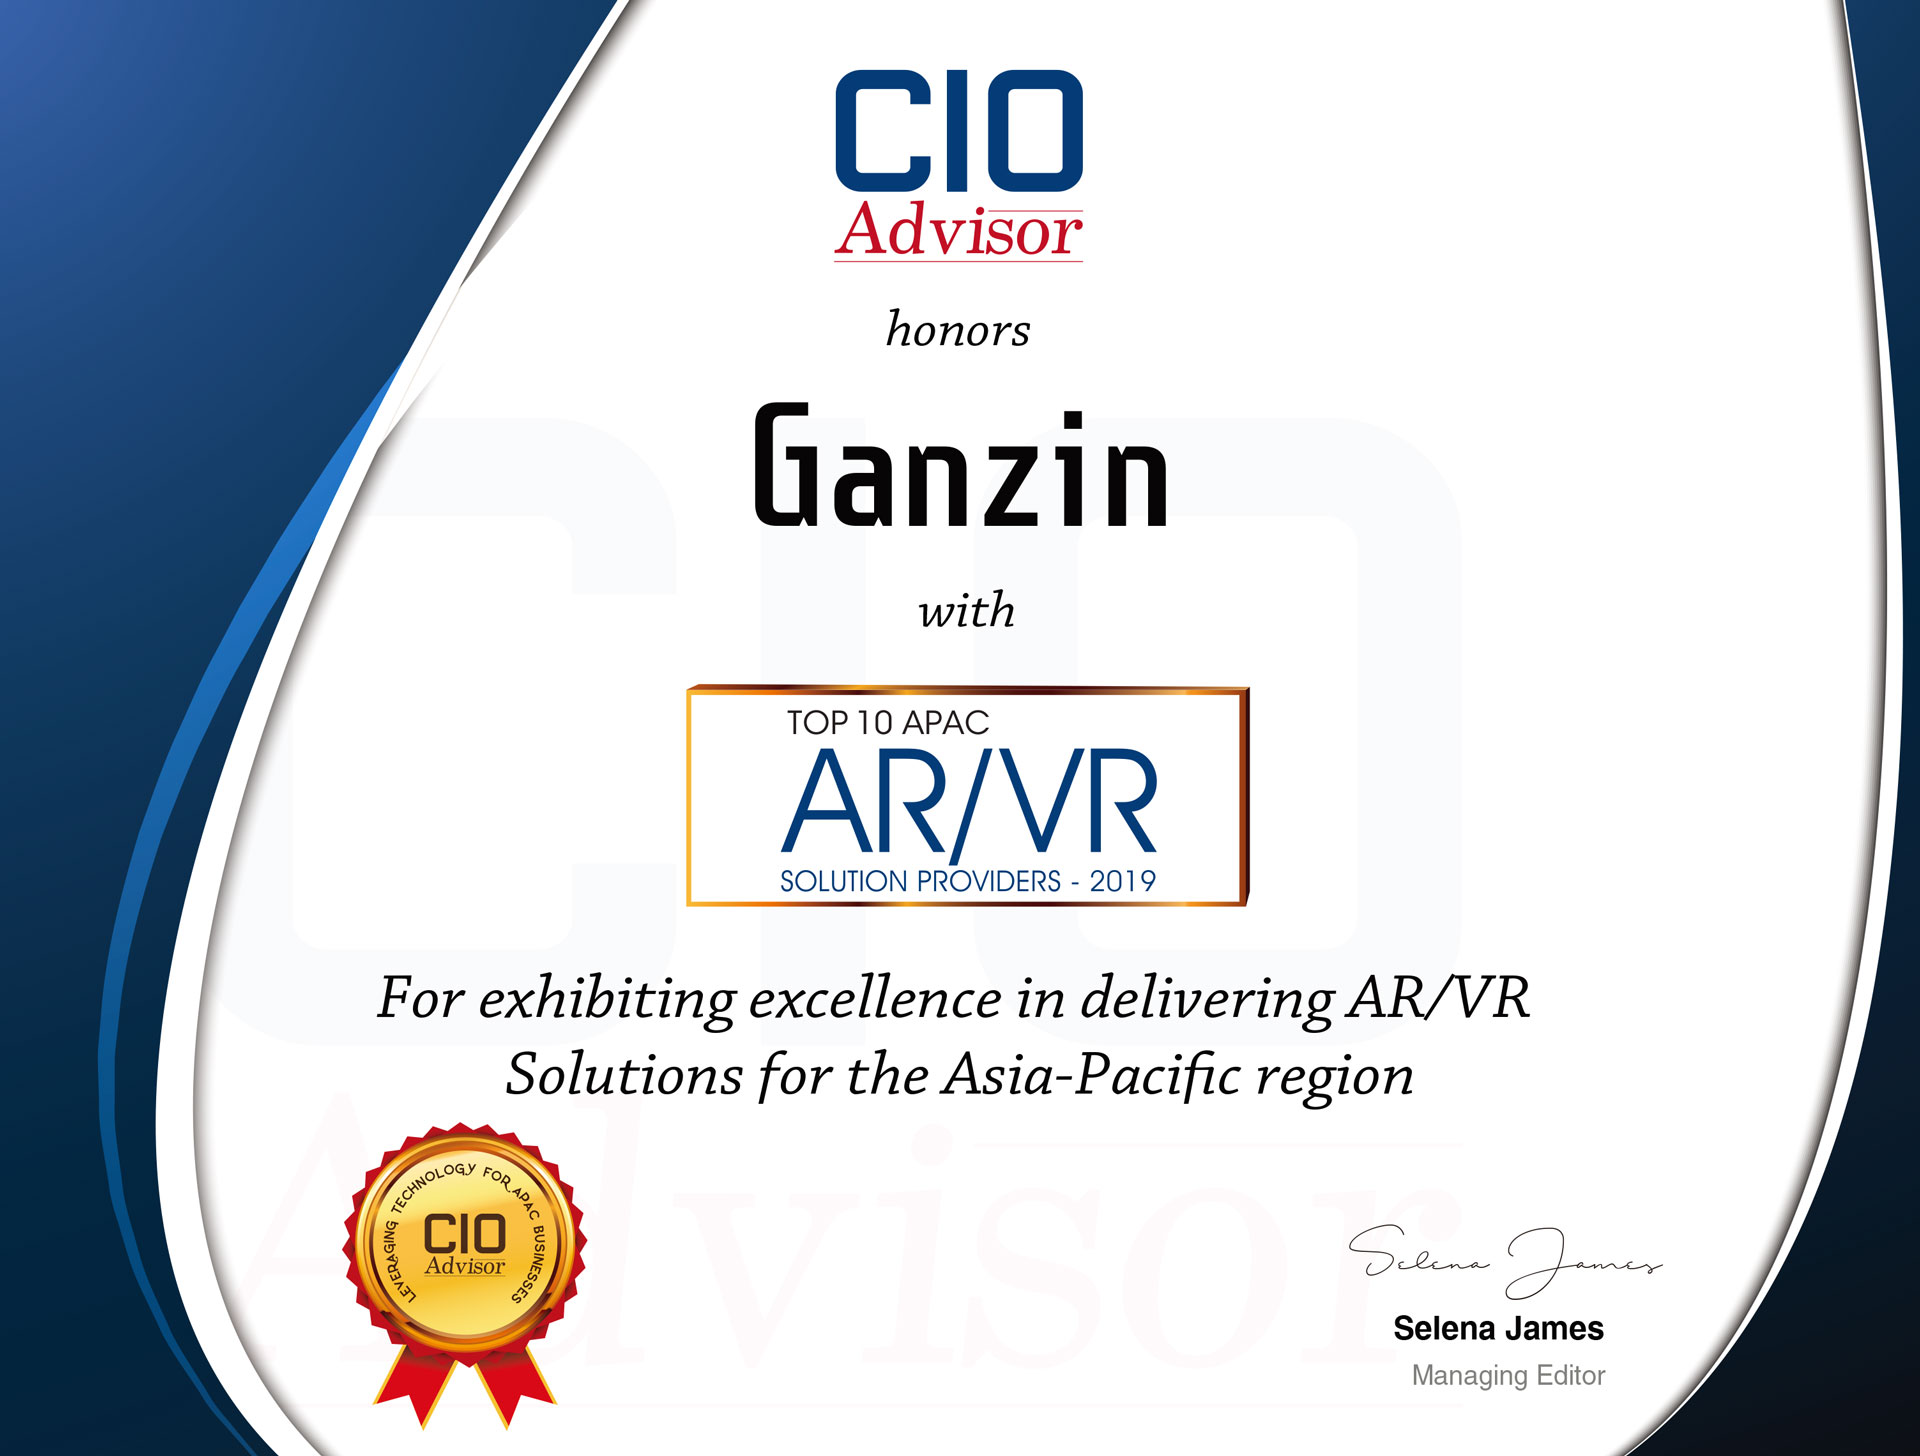 Ganzin was selected as The top 10 AR/VR solution provider of 2019 by CIO Advisor APAC